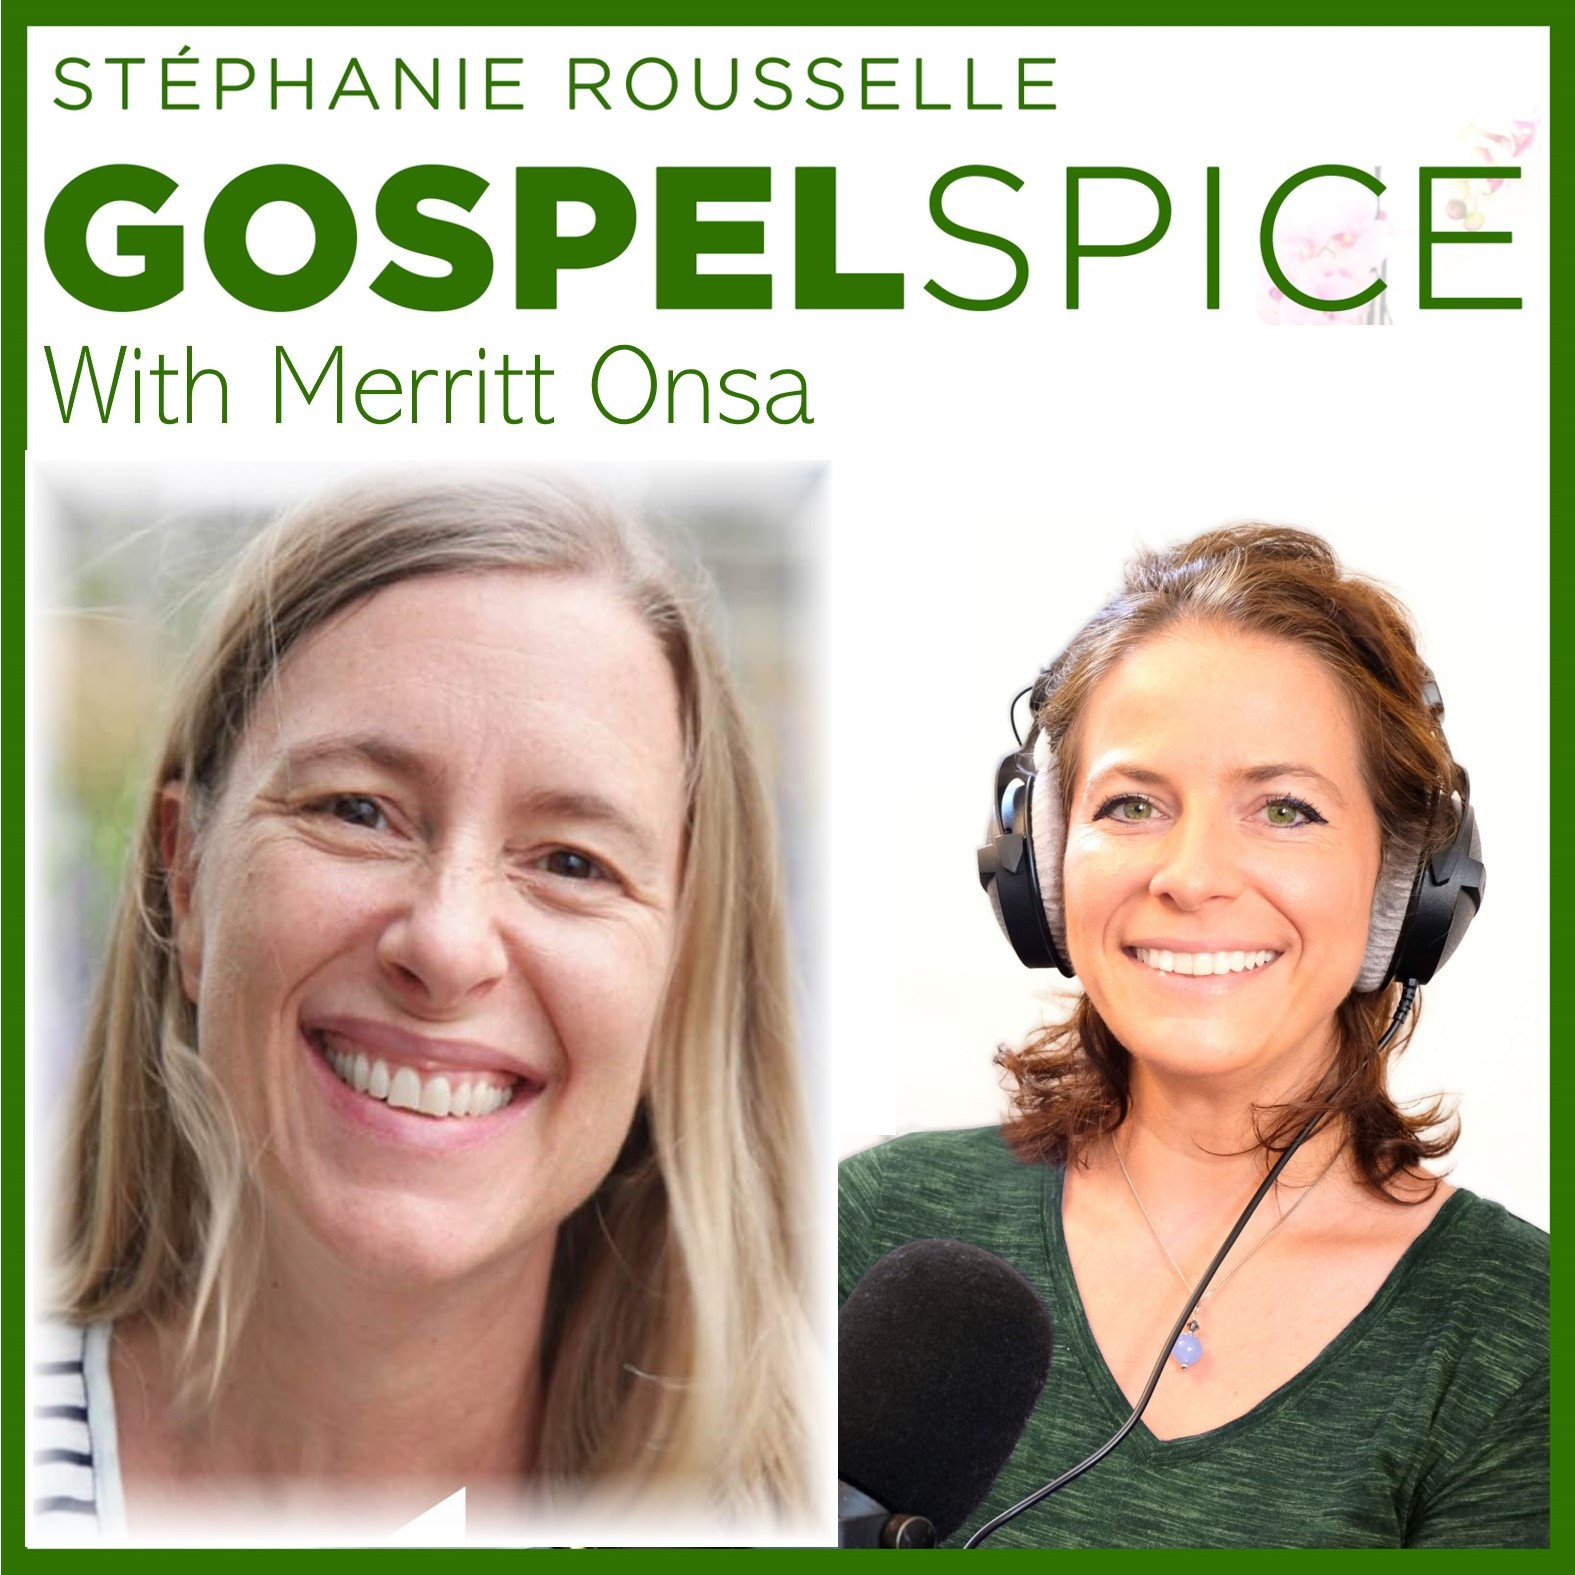 Cultivating our God-shaped dreams, with Merritt Onsa